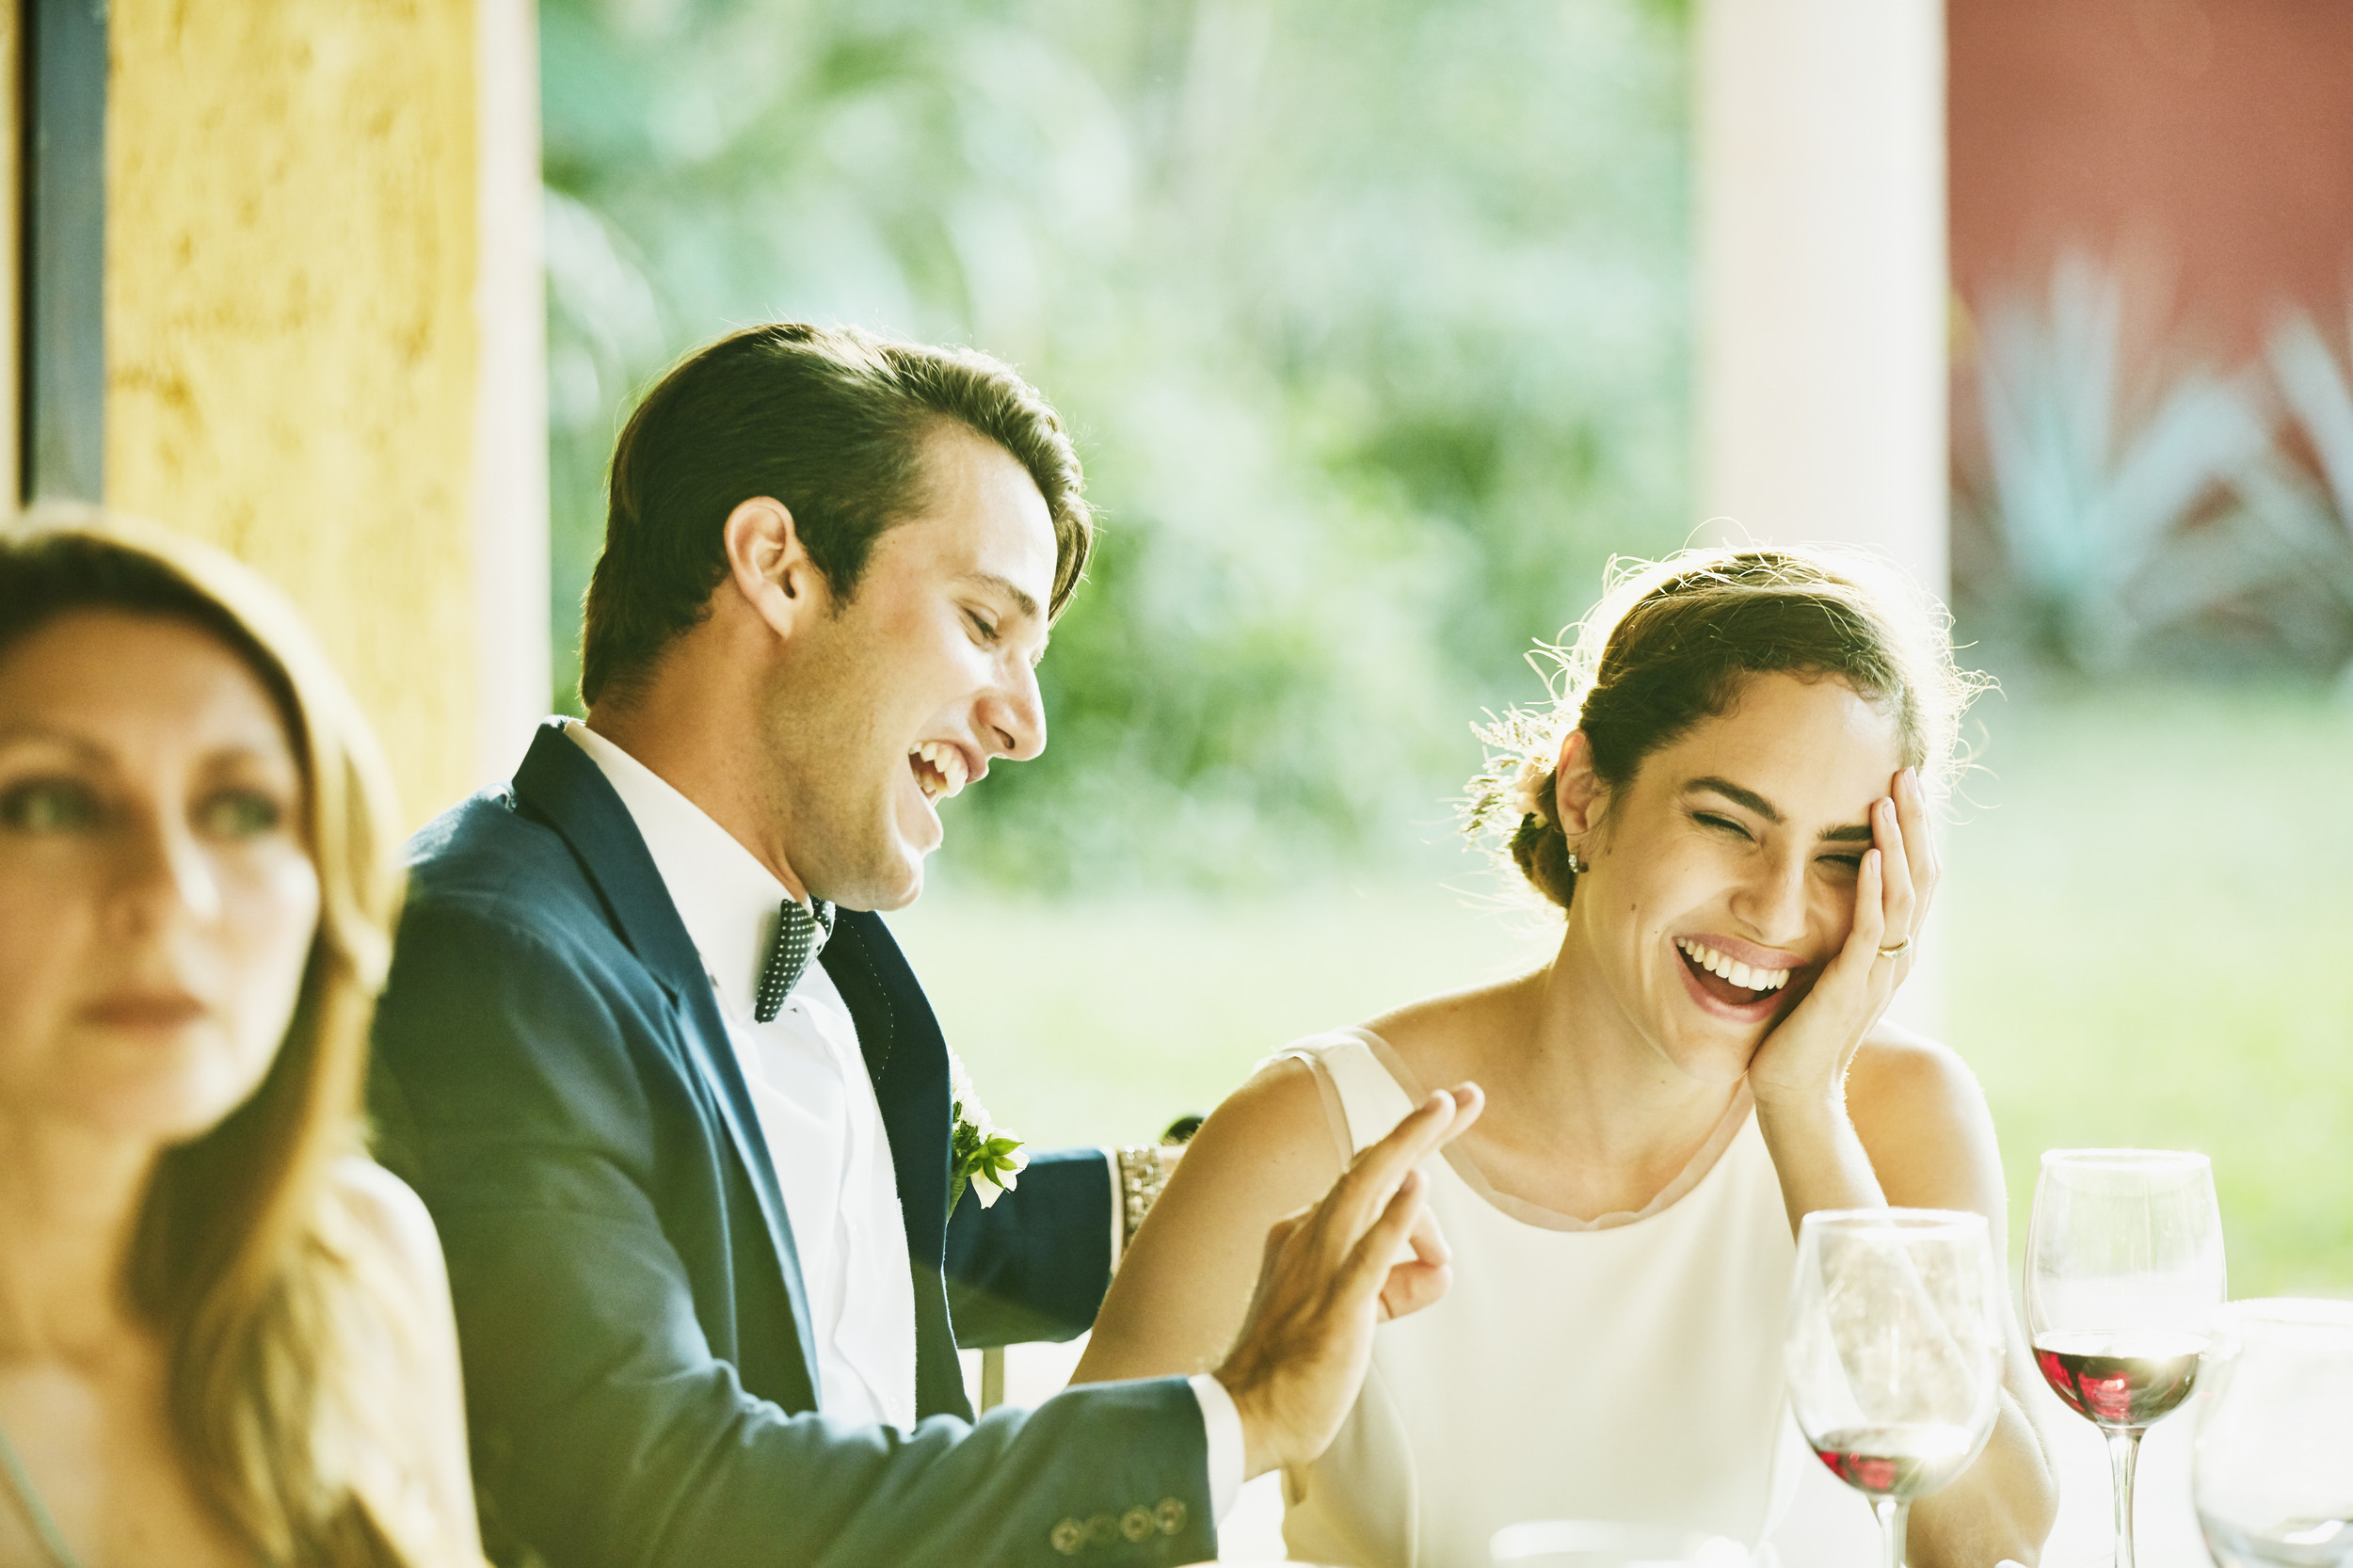 Giving Cash As A Wedding Gift: How Much Cash Should You Give For A Wedding Gift?